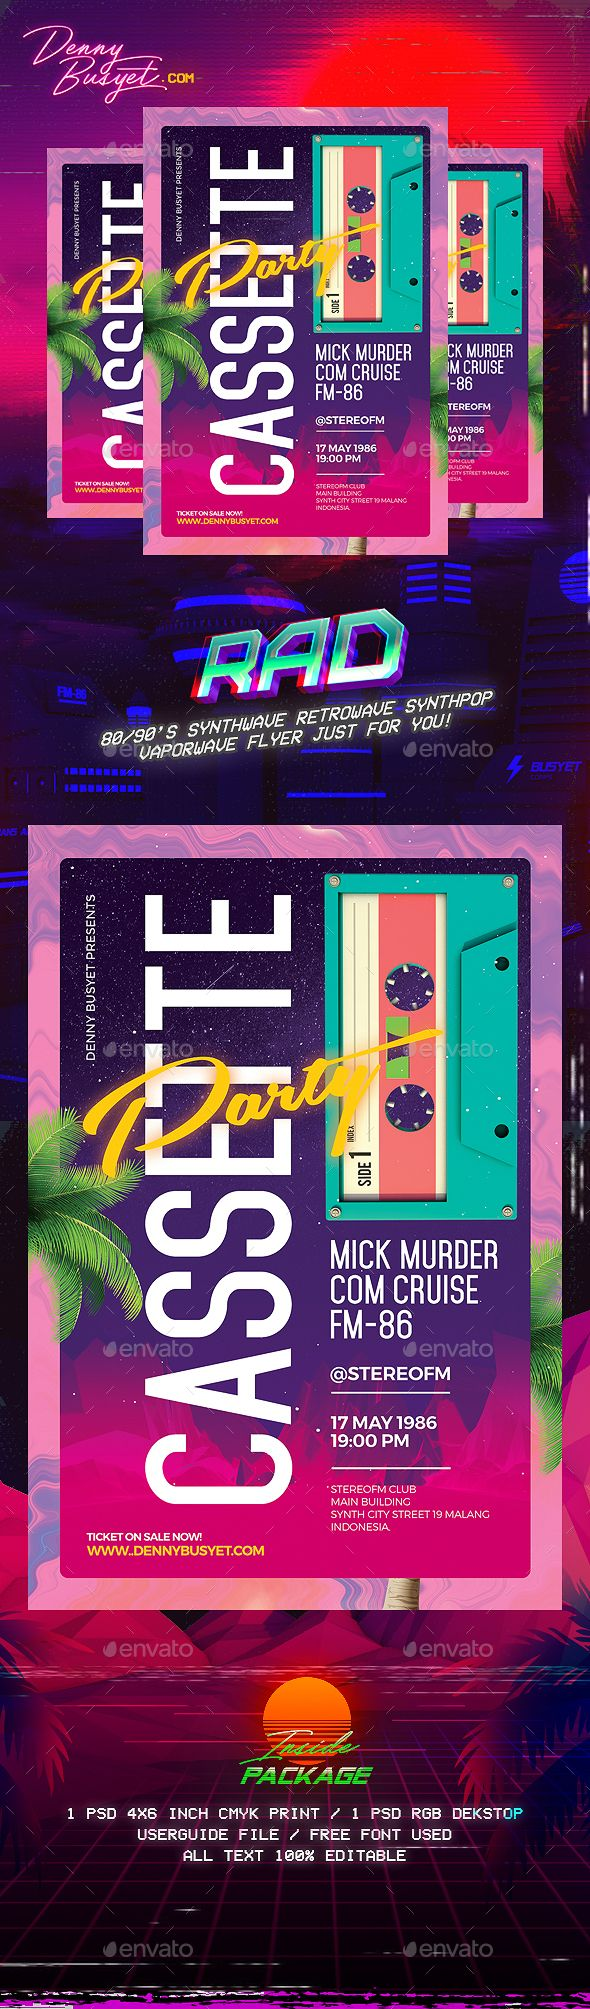 80s poster design - Cassette Party Retro 80 S Synthwave Flyer